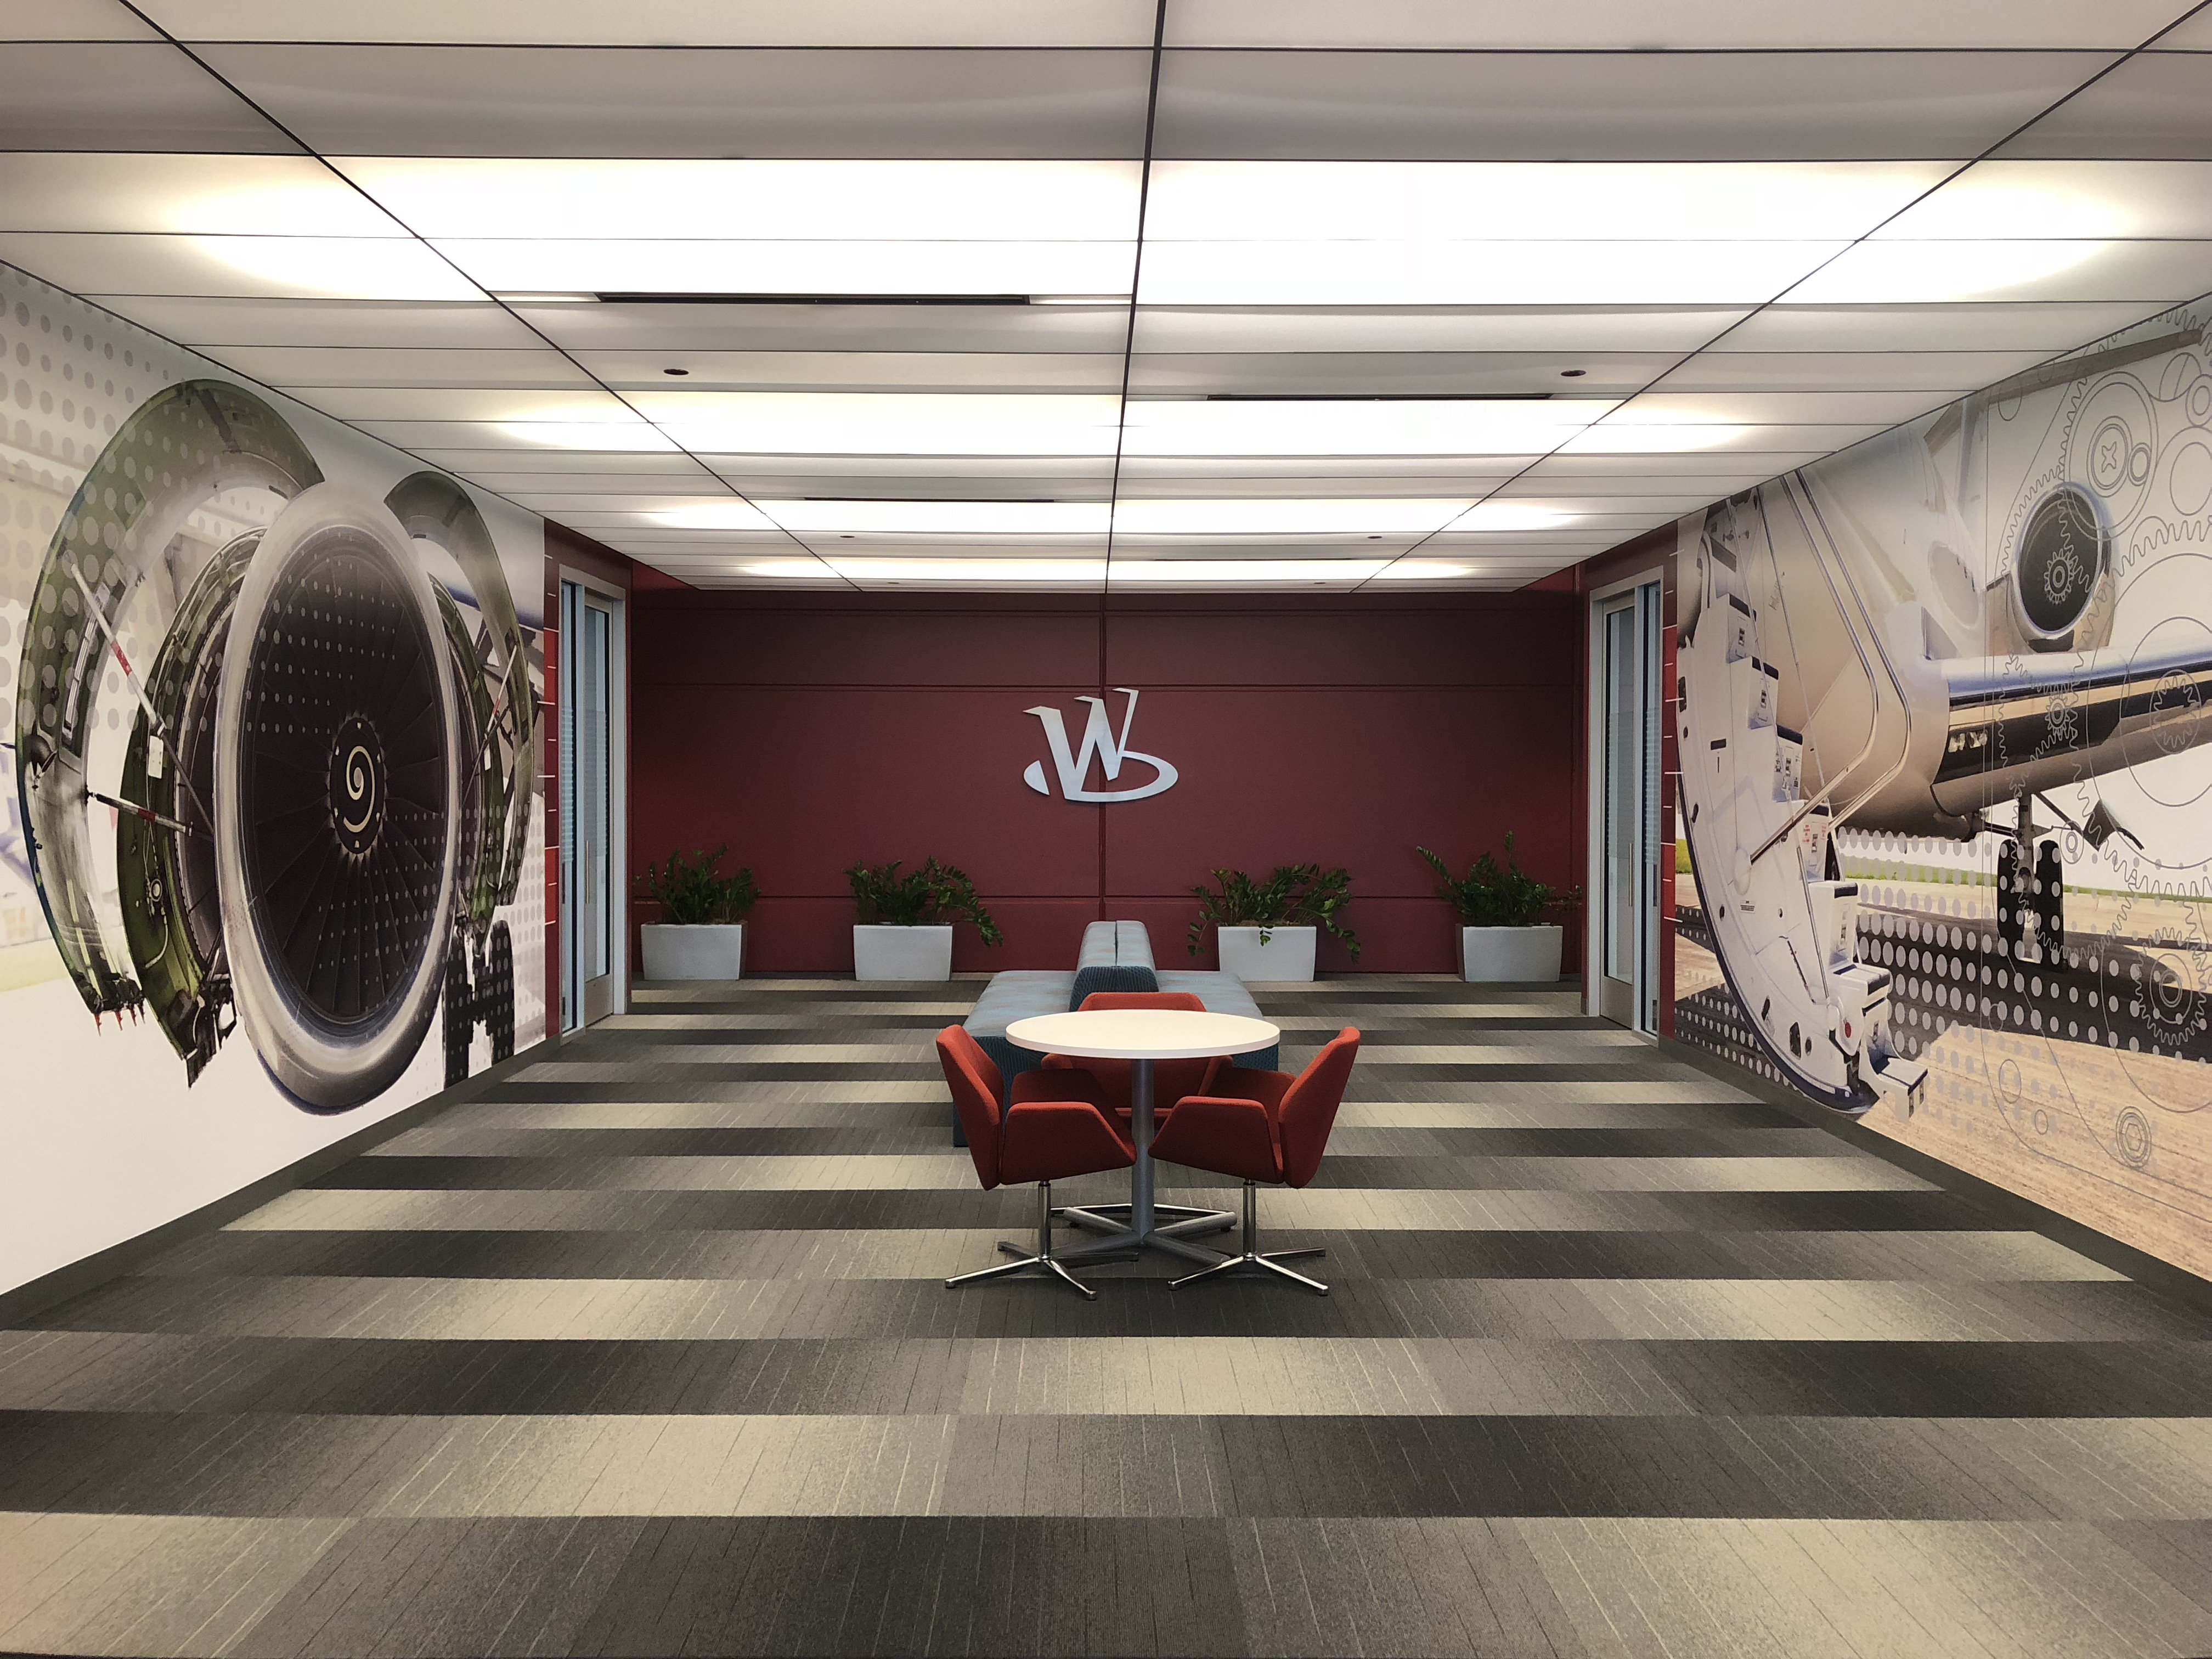 Board room graphics and sign installation by VisuCom Graphics